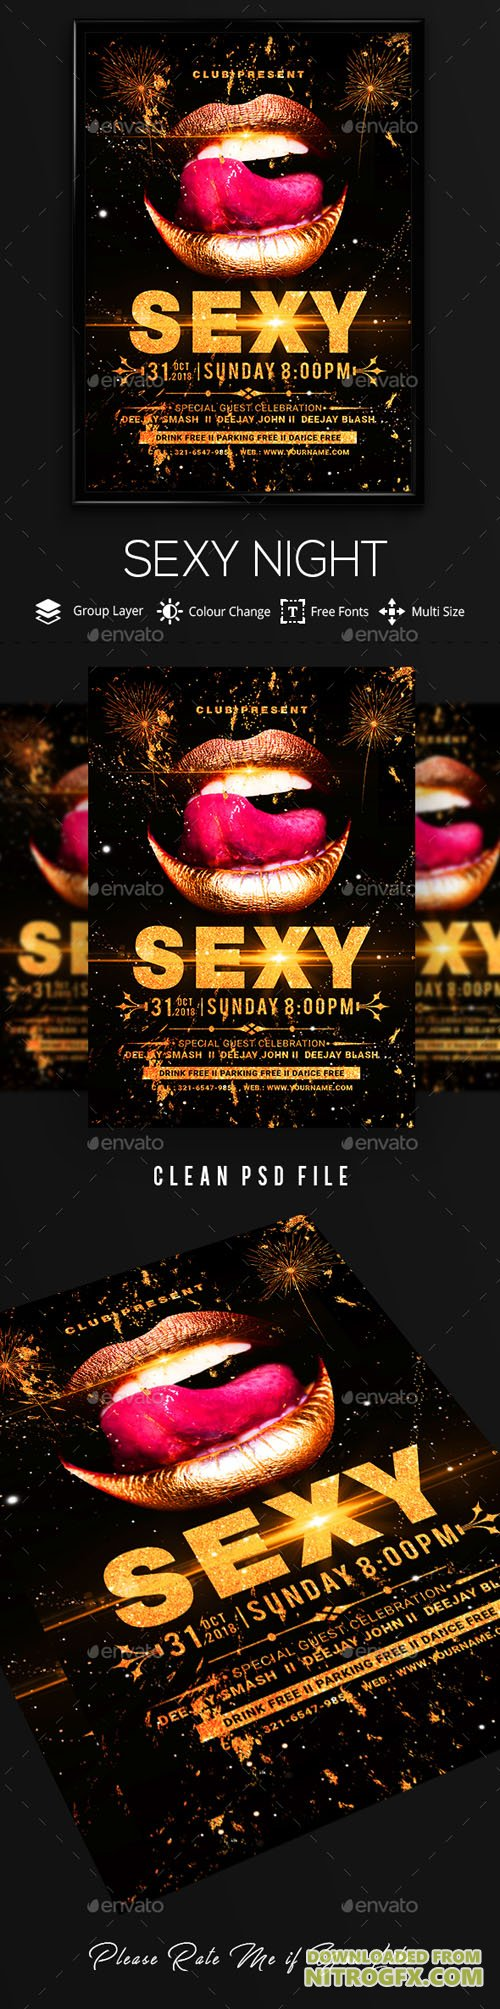 Sexy Night Poster / Flyer 20735226